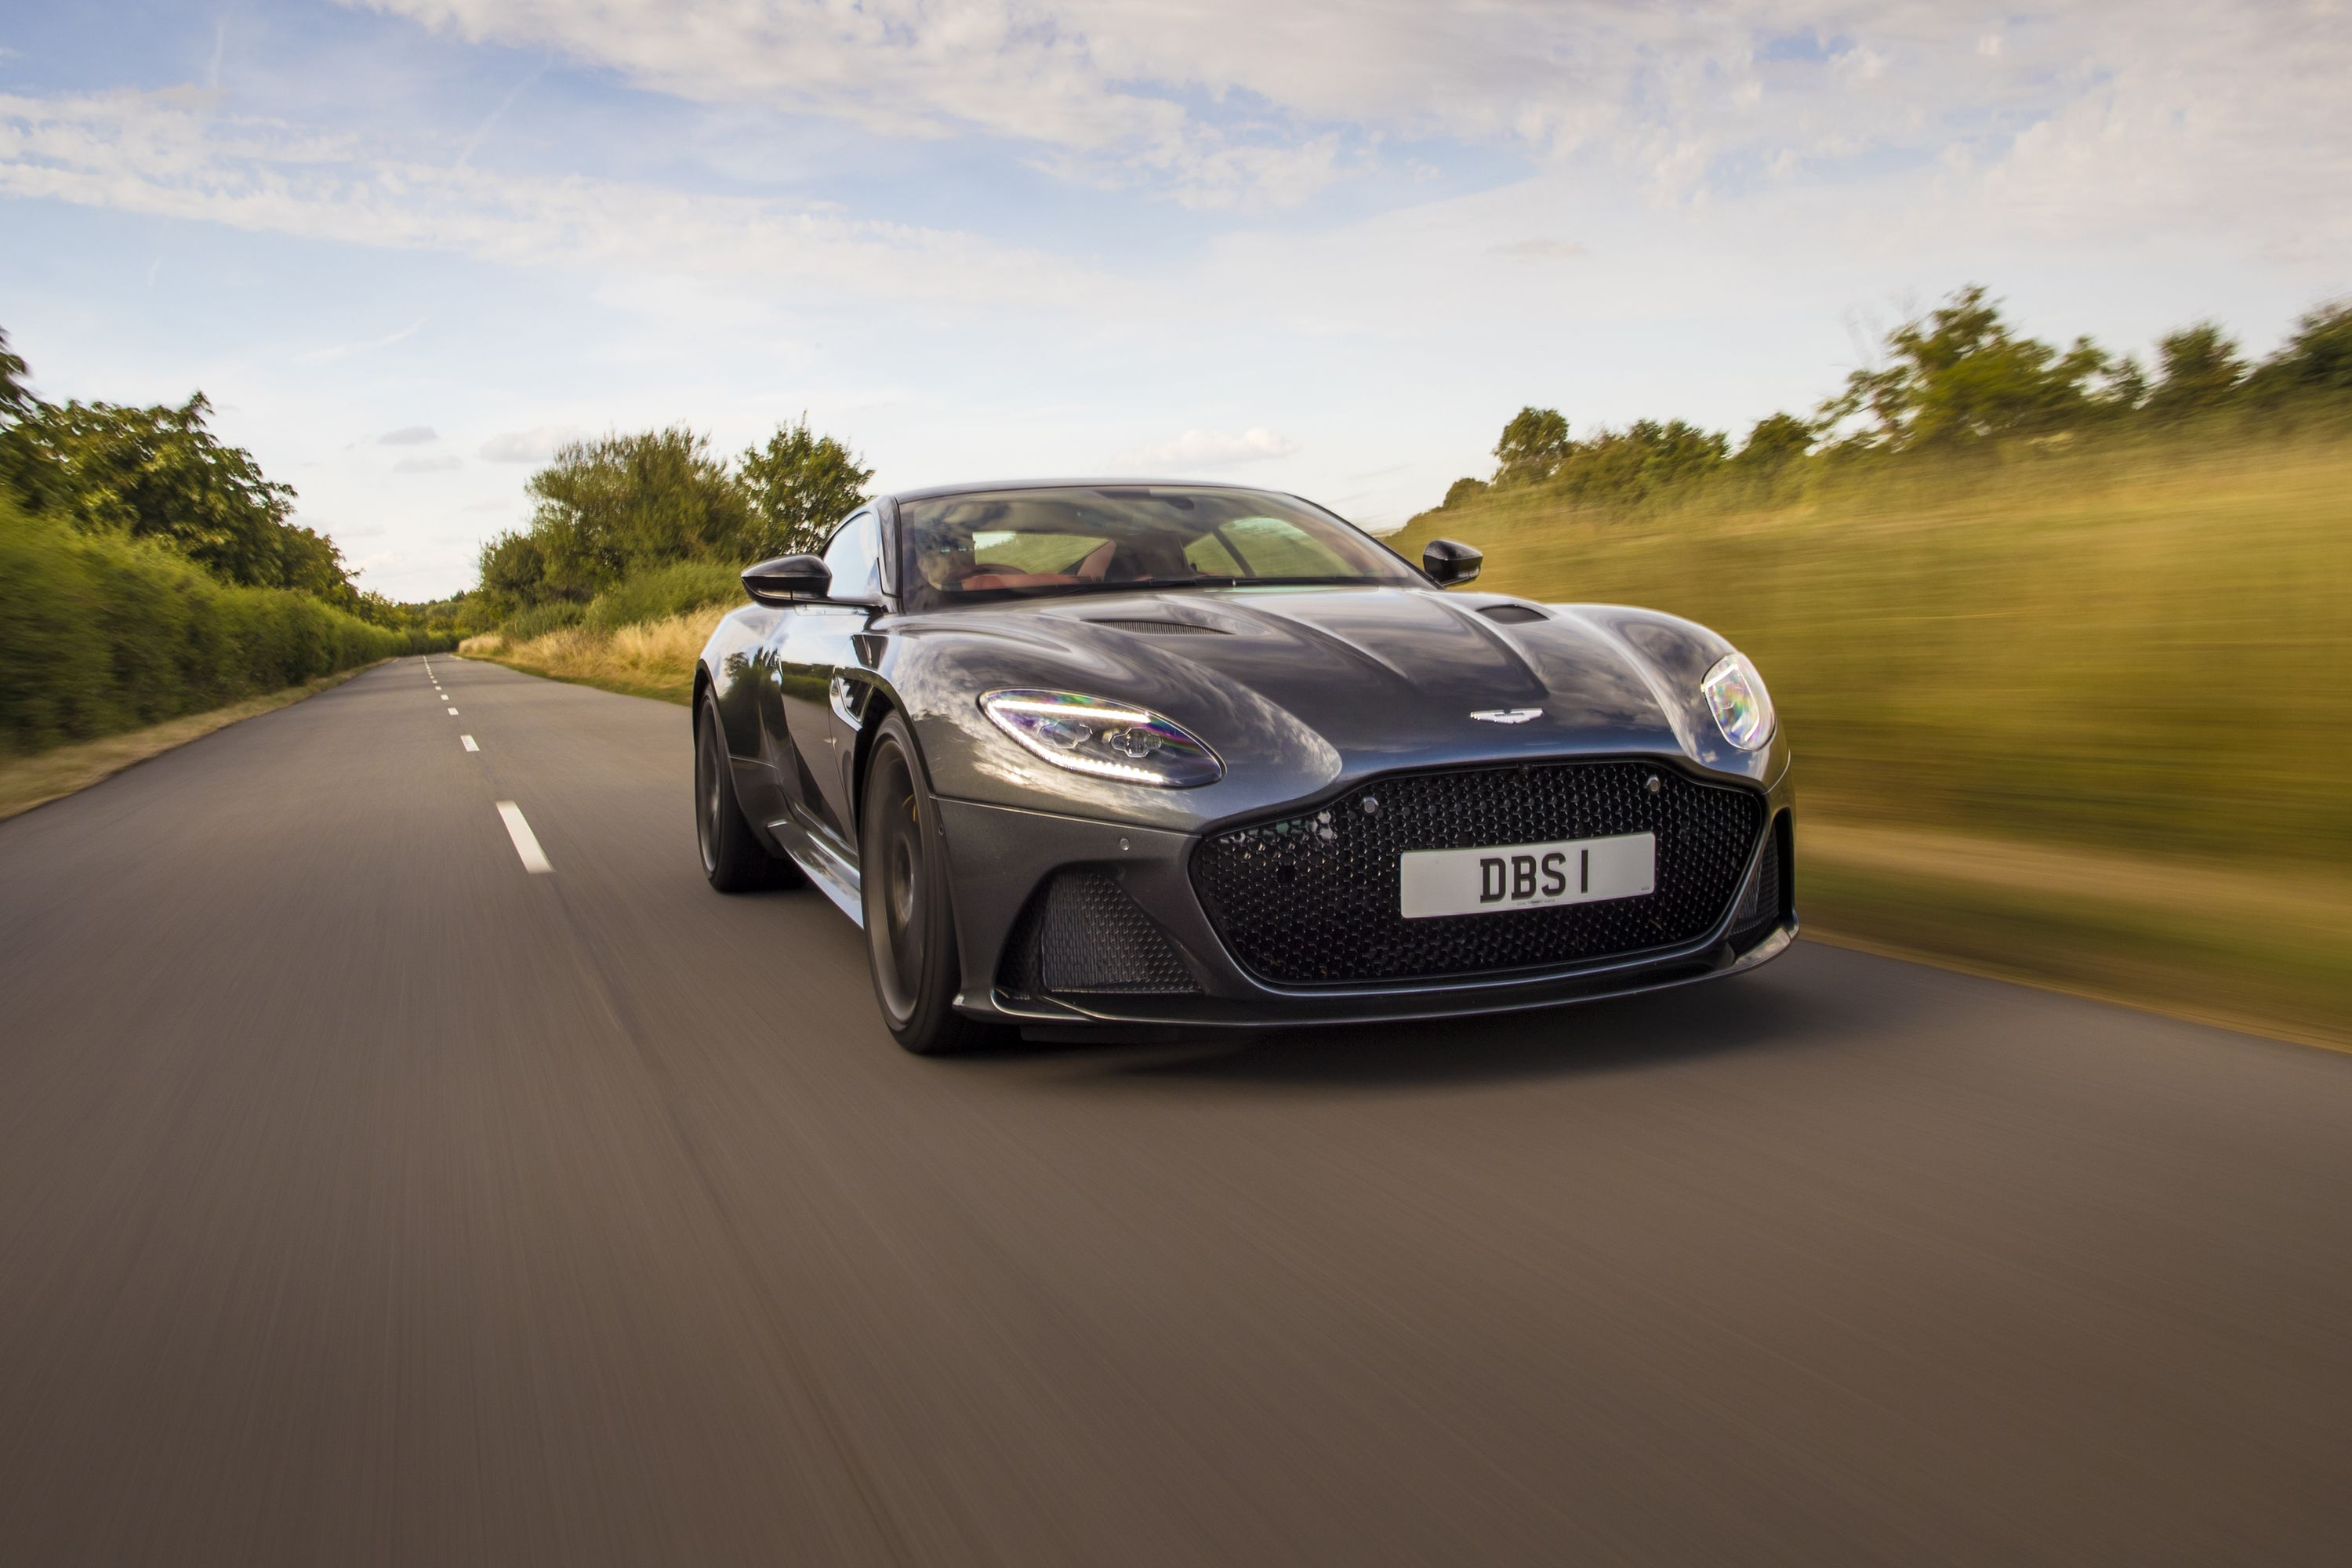 Aston Martin May Be Bought By a Canadian Billionaire